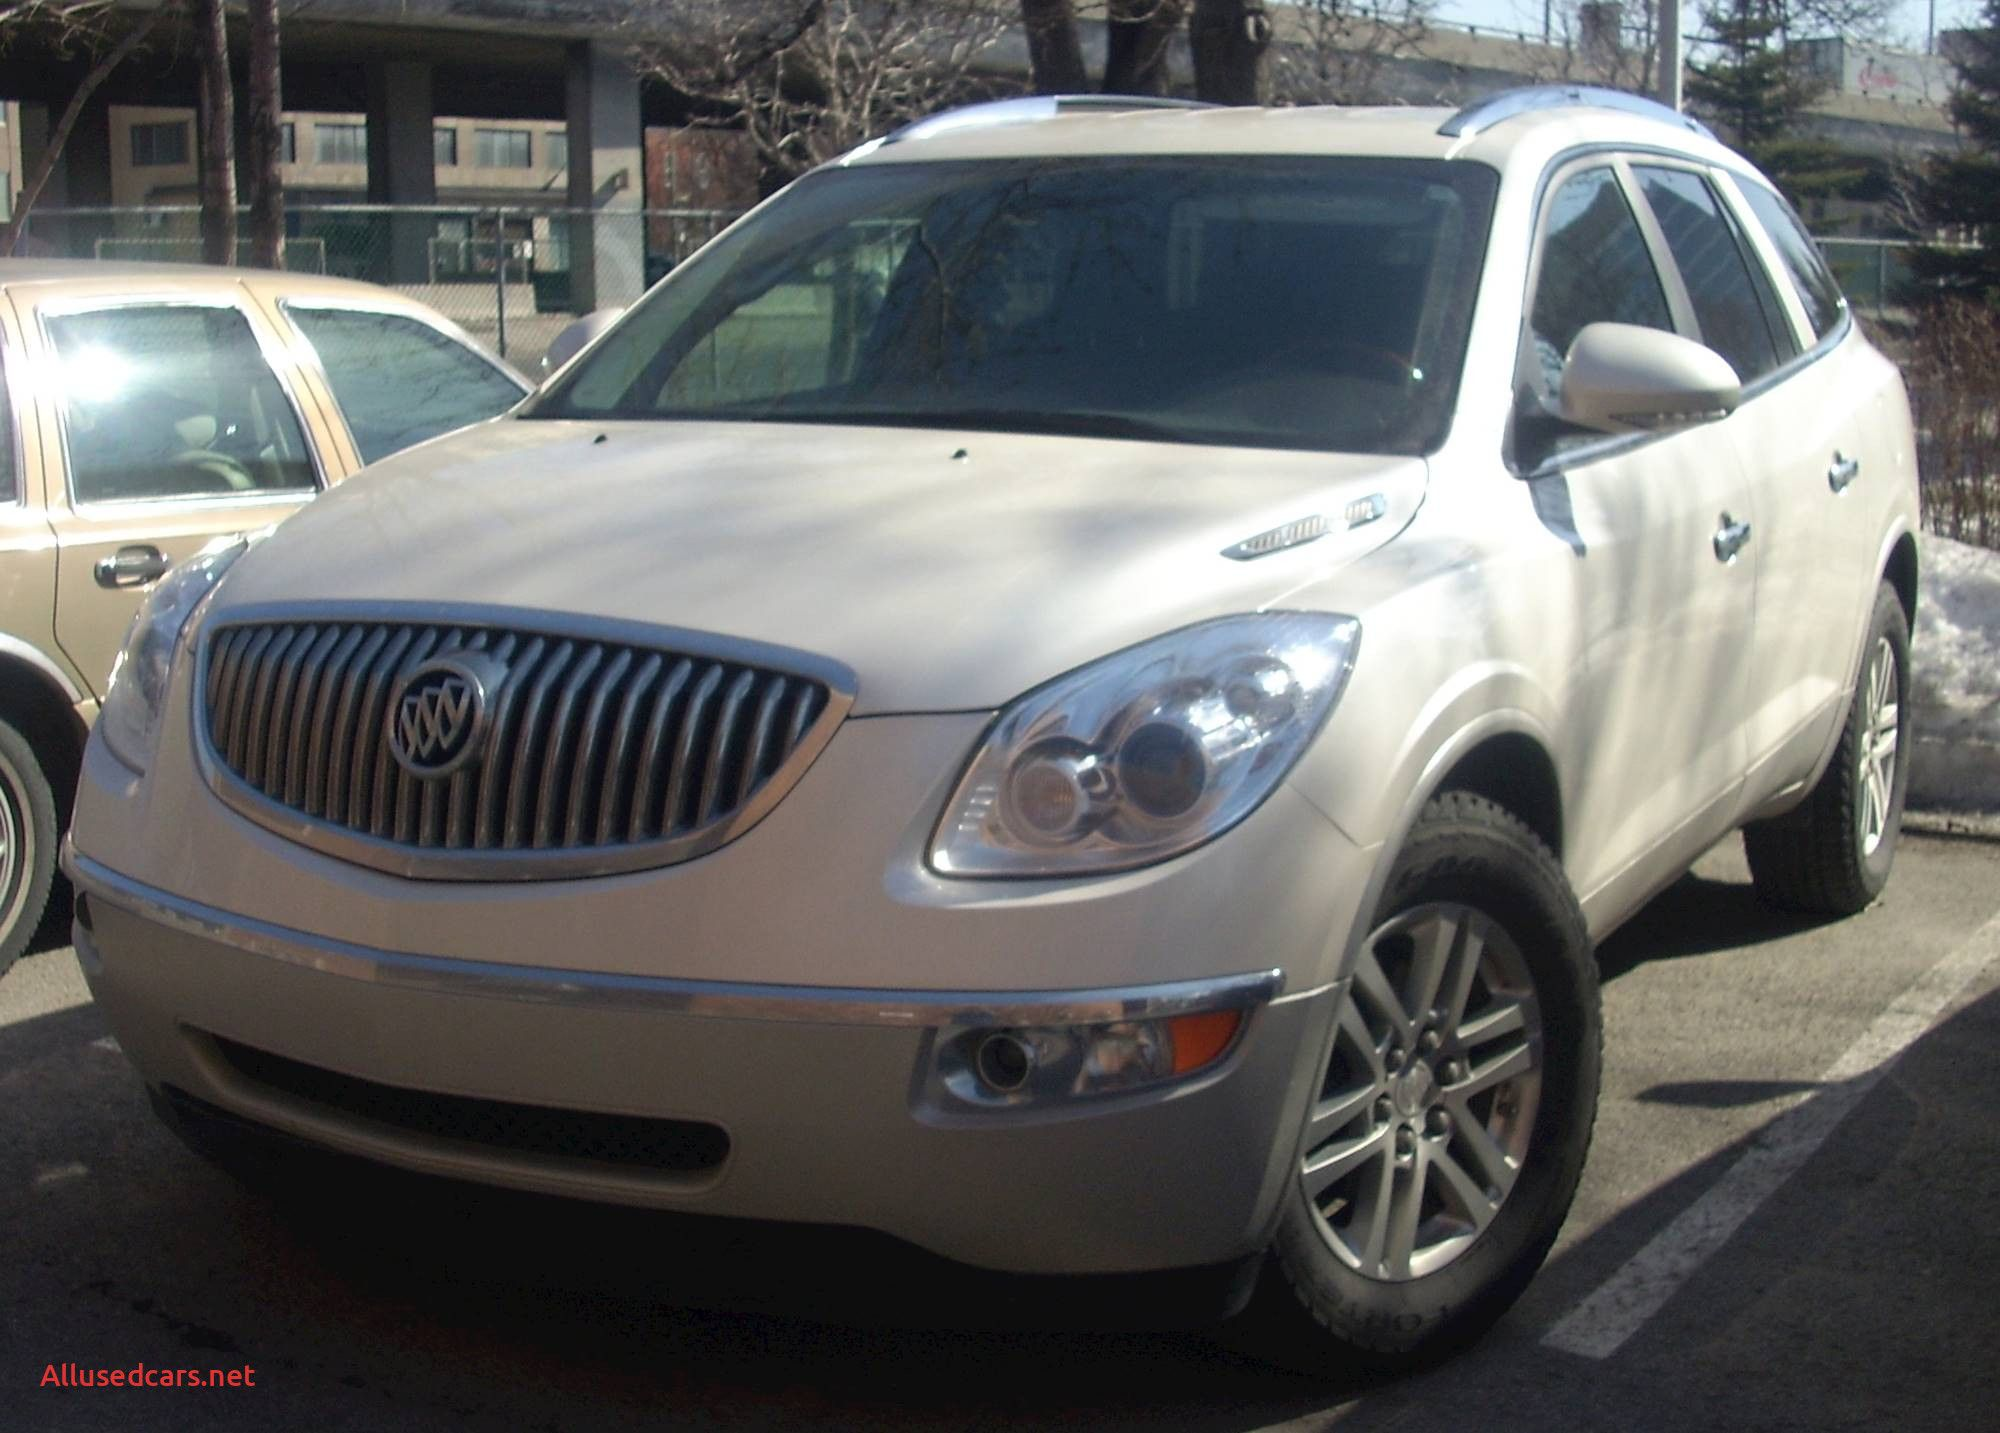 Buick Enclave Cargo Space Fresh 2008 Buick Enclave Cx 4dr Suv 3 6l V6 Awd Auto Buick Enclave Buick Awd